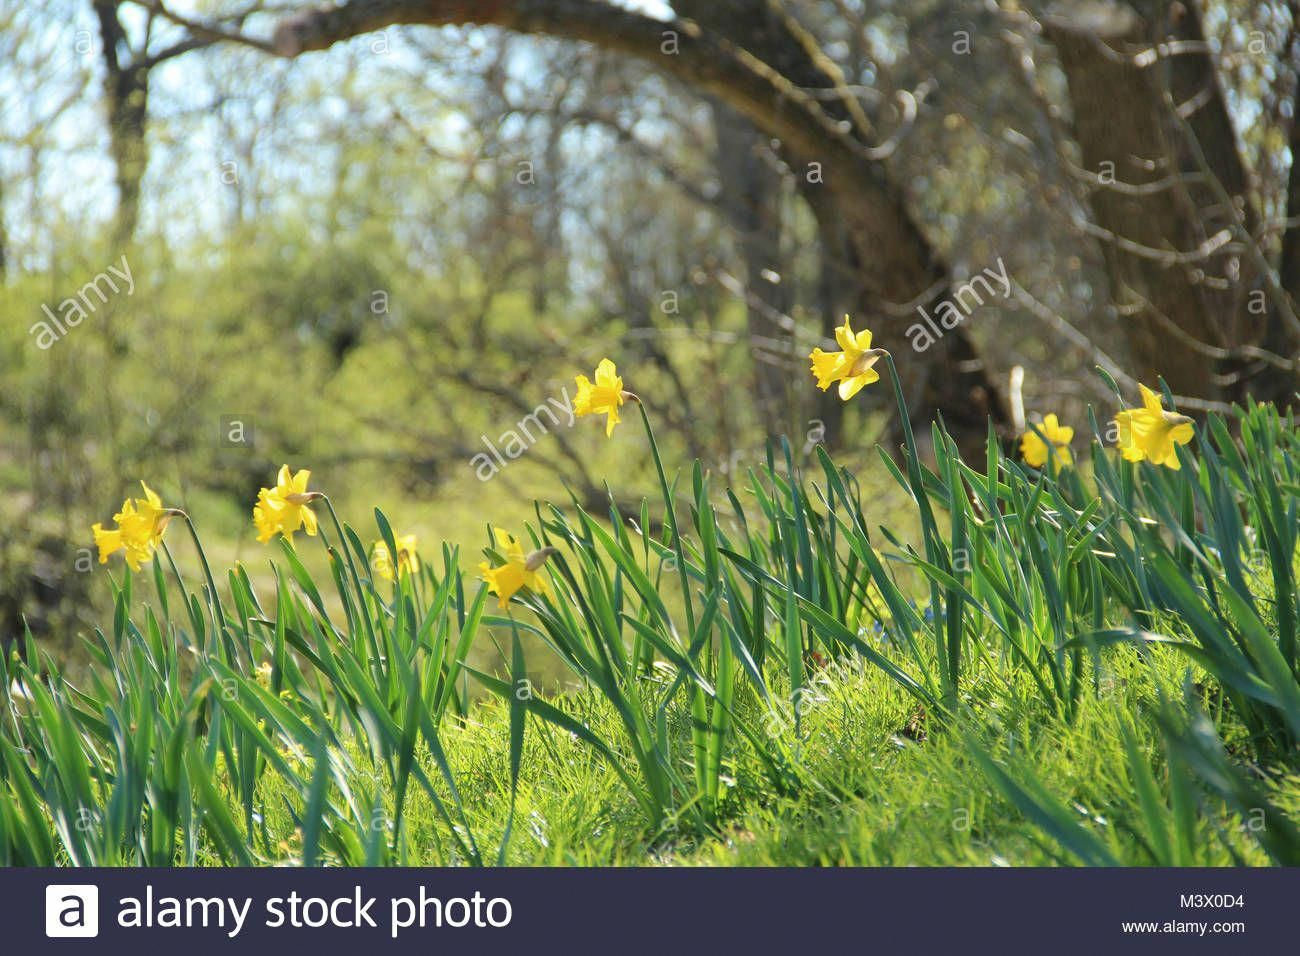 Download This Stock Image Spring Hill With Yellow Daffodils M3x0d4 From Alamy S Library Of Millions Of High Resolution With Images Yellow Daffodils Daffodils Landscape